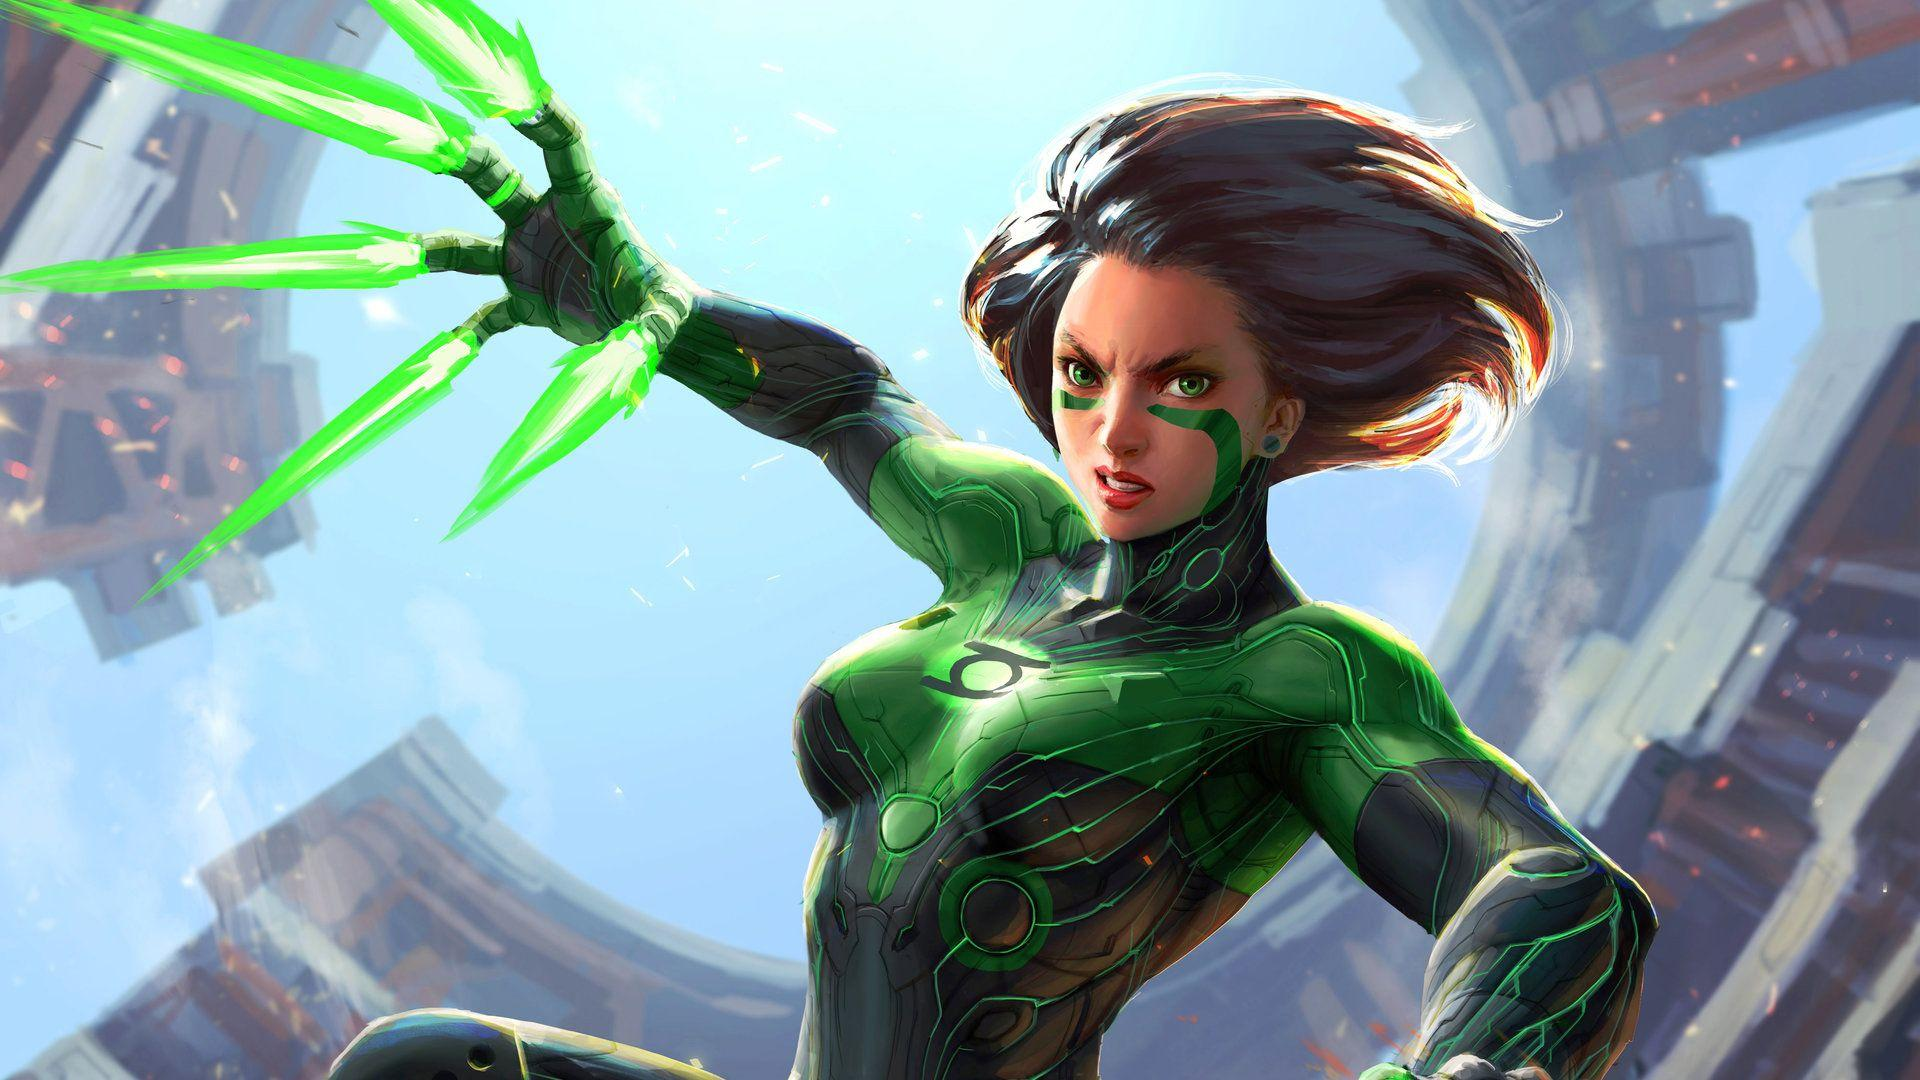 Green Alita Battle Angel, HD Movies, 4k Wallpapers, Image